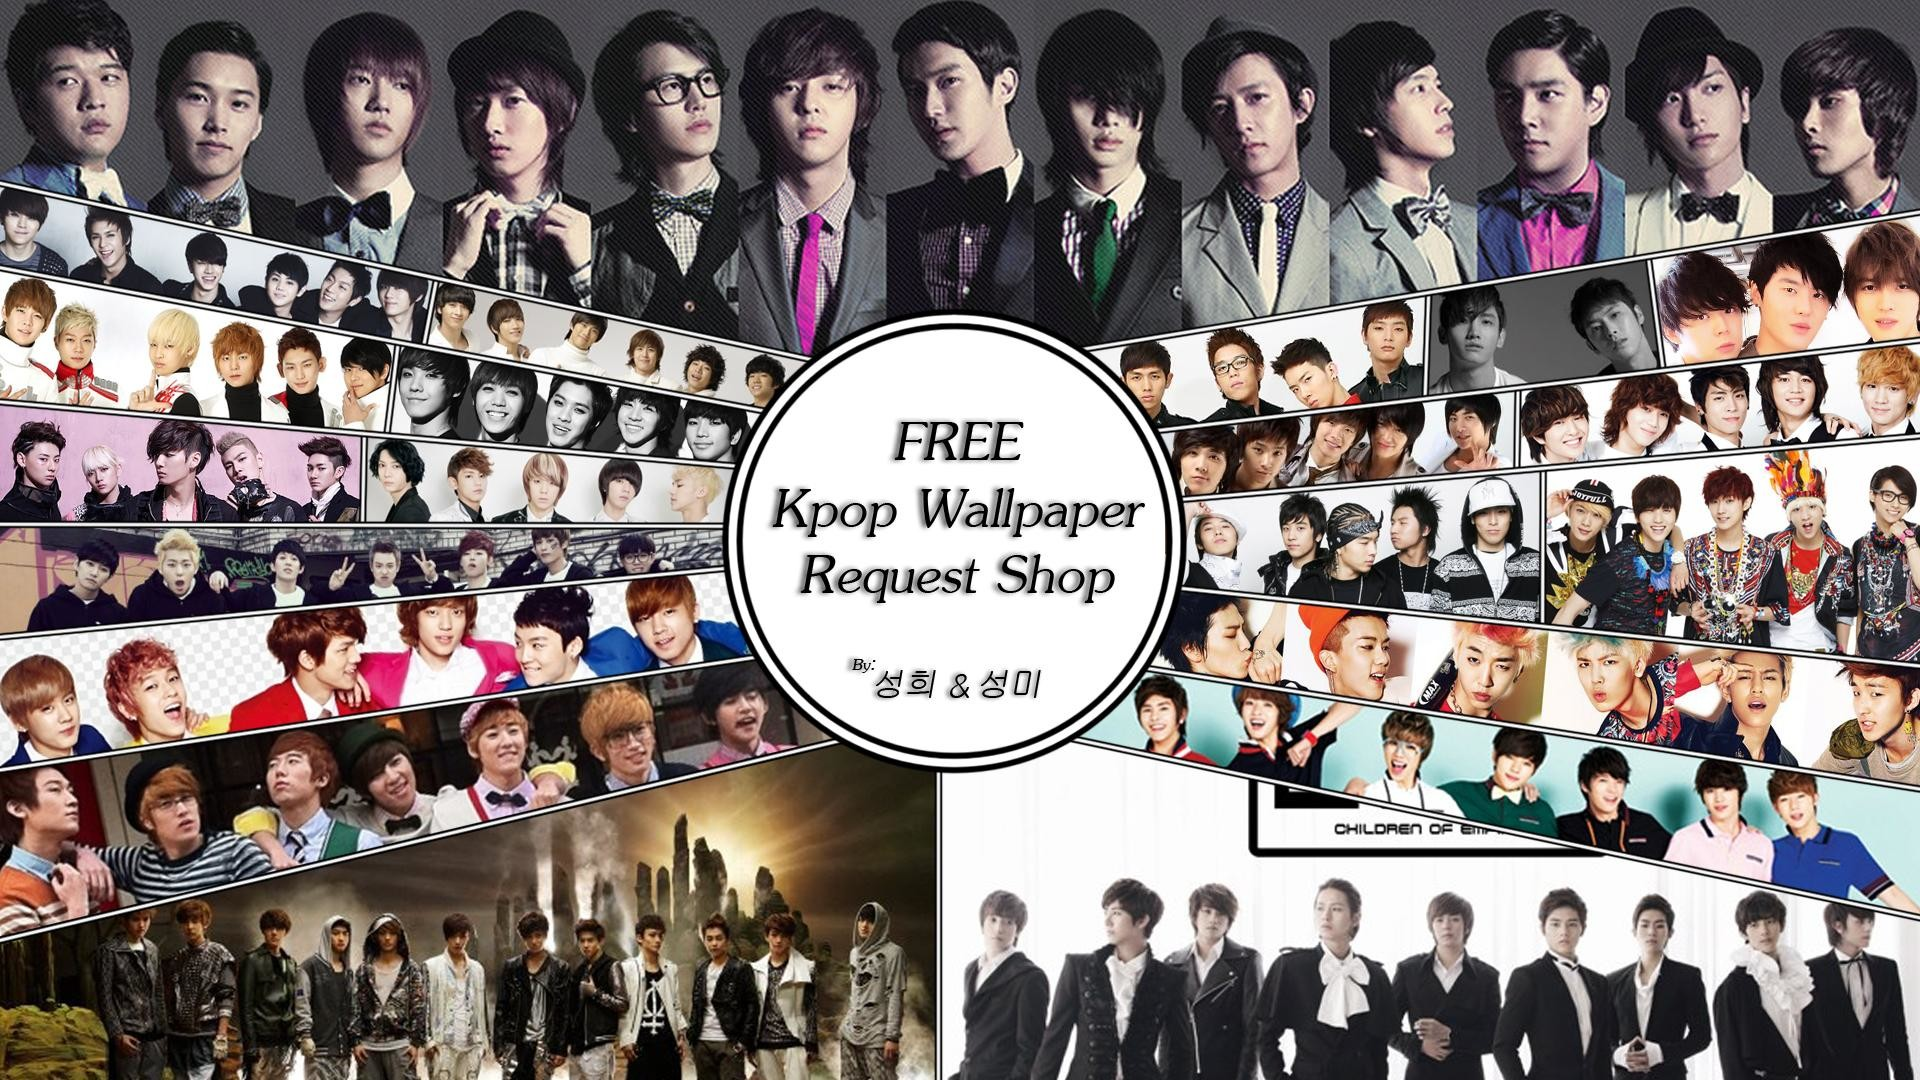 Awesome Kpop Hd Wallpaper Pack 862 Free Download For Kpop Wallpaper Hd 82893 Hd Wallpaper Backgrounds Download